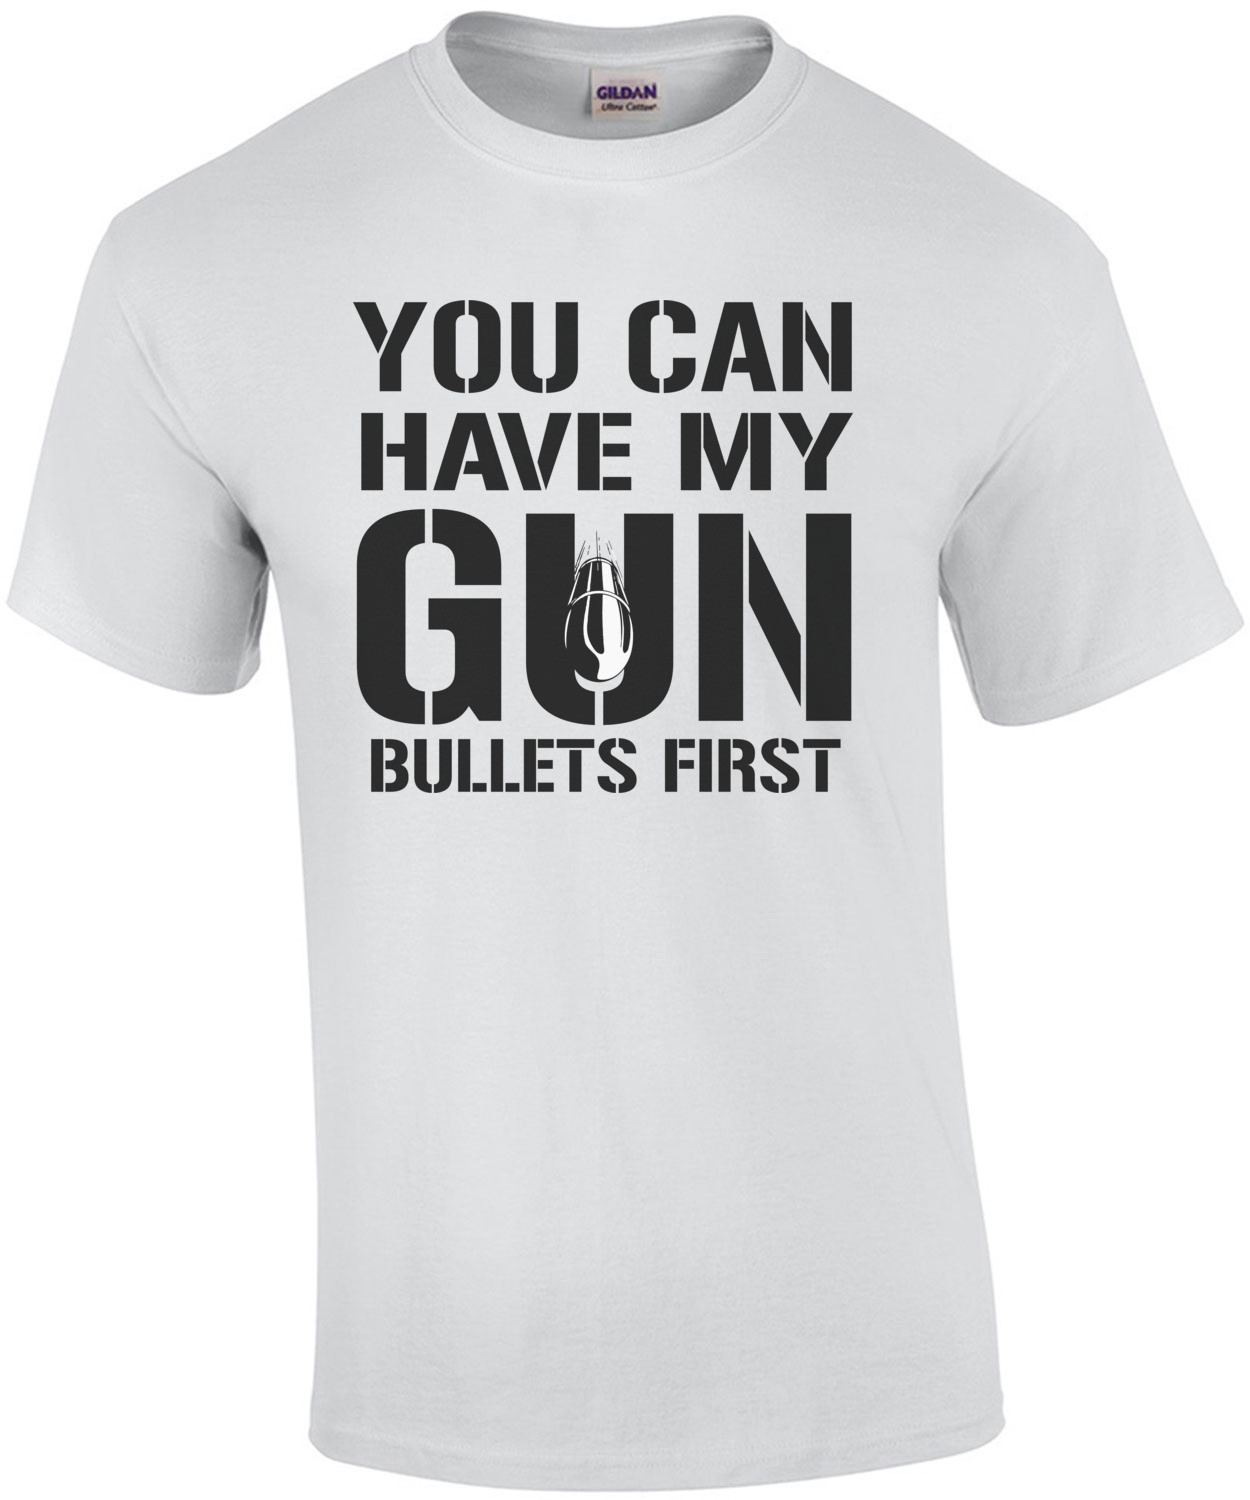 You can have my gun bullets first - pro gun t-shirt